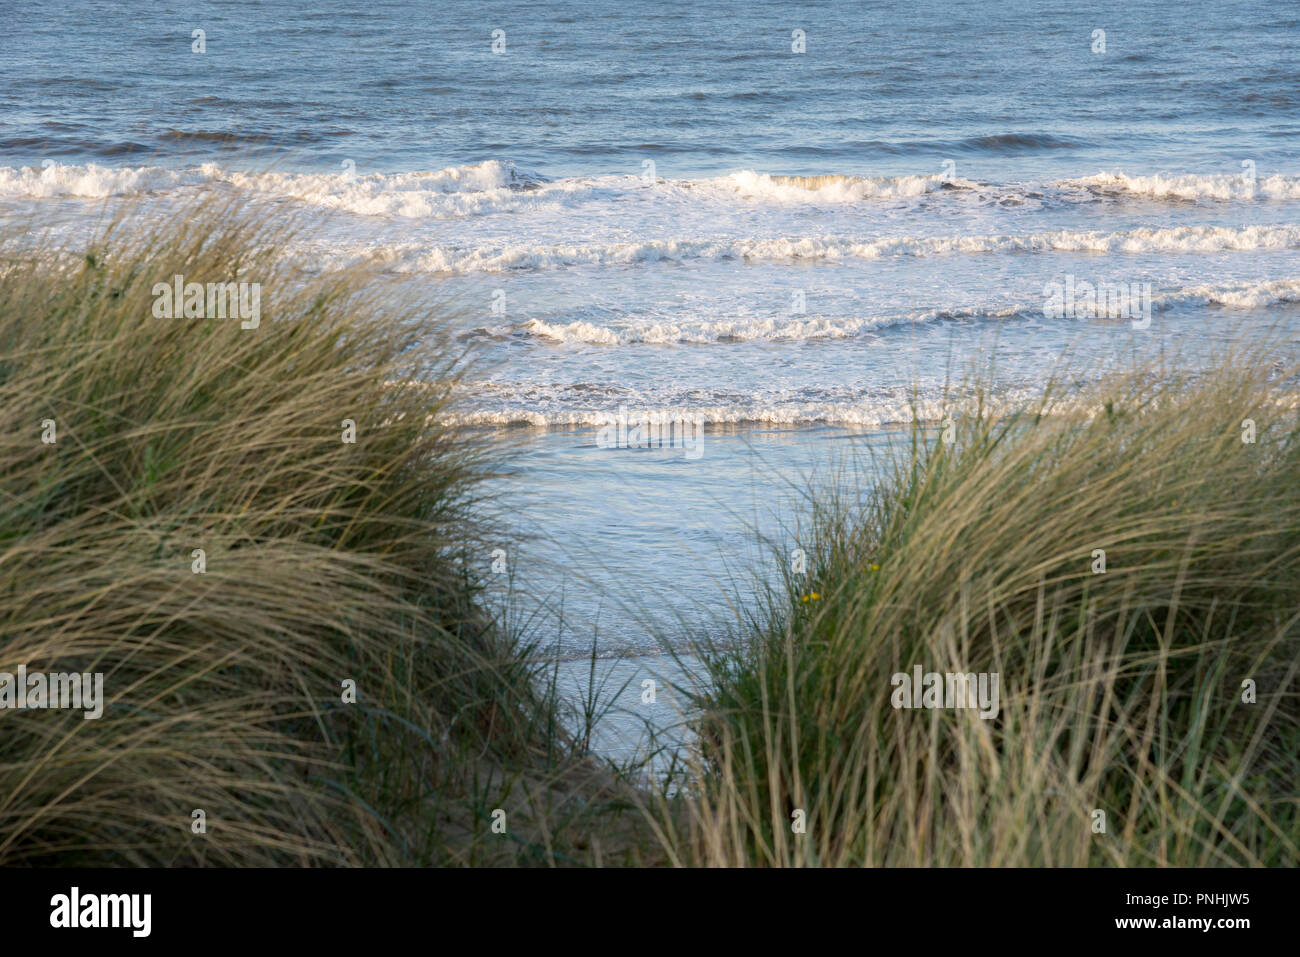 View of the sea through dune grasses at Cattersty sands, Skinningrove, North Yorkshire, England. - Stock Image